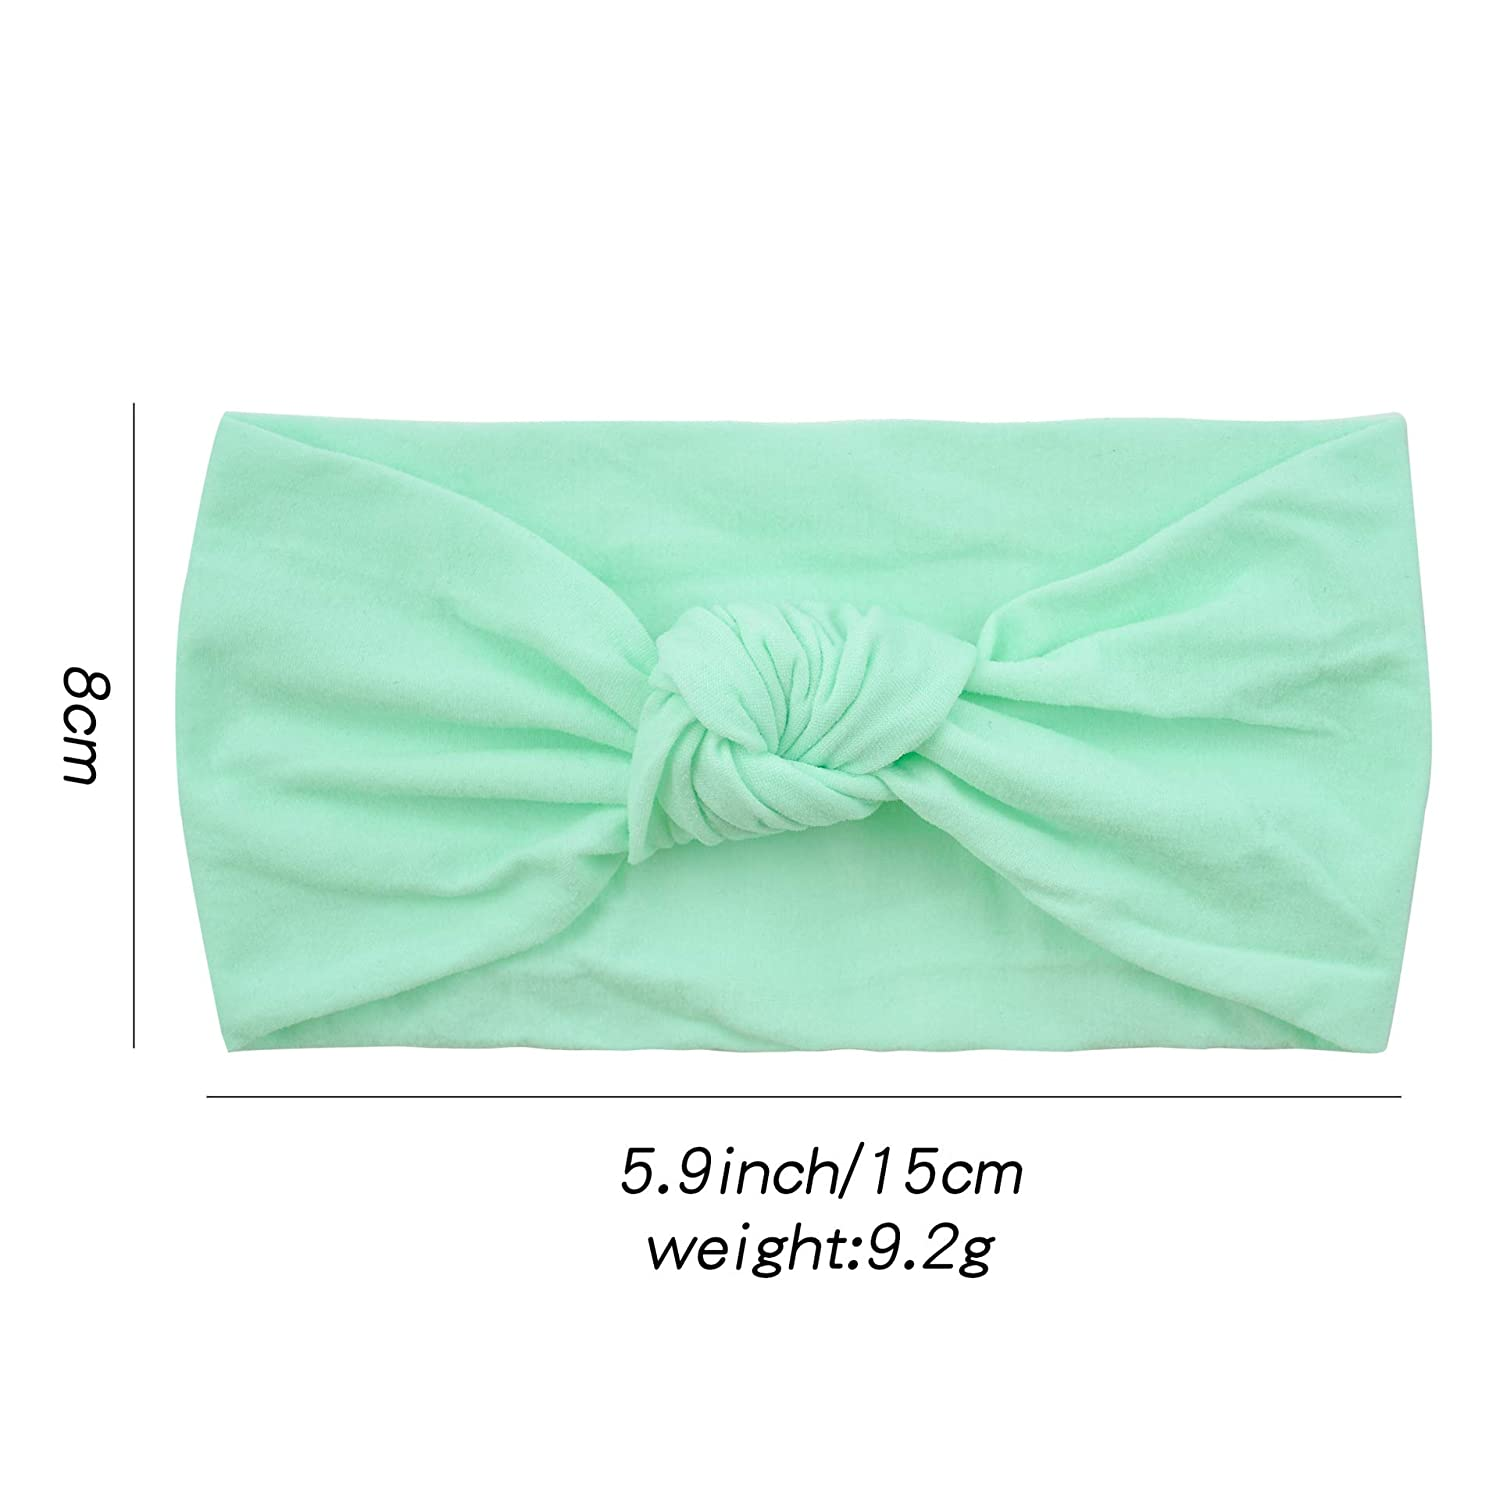 ZHW Baby Nylon Headbands Turban Knotted Girls Hairband Super Soft and Stretchy 10 Pack